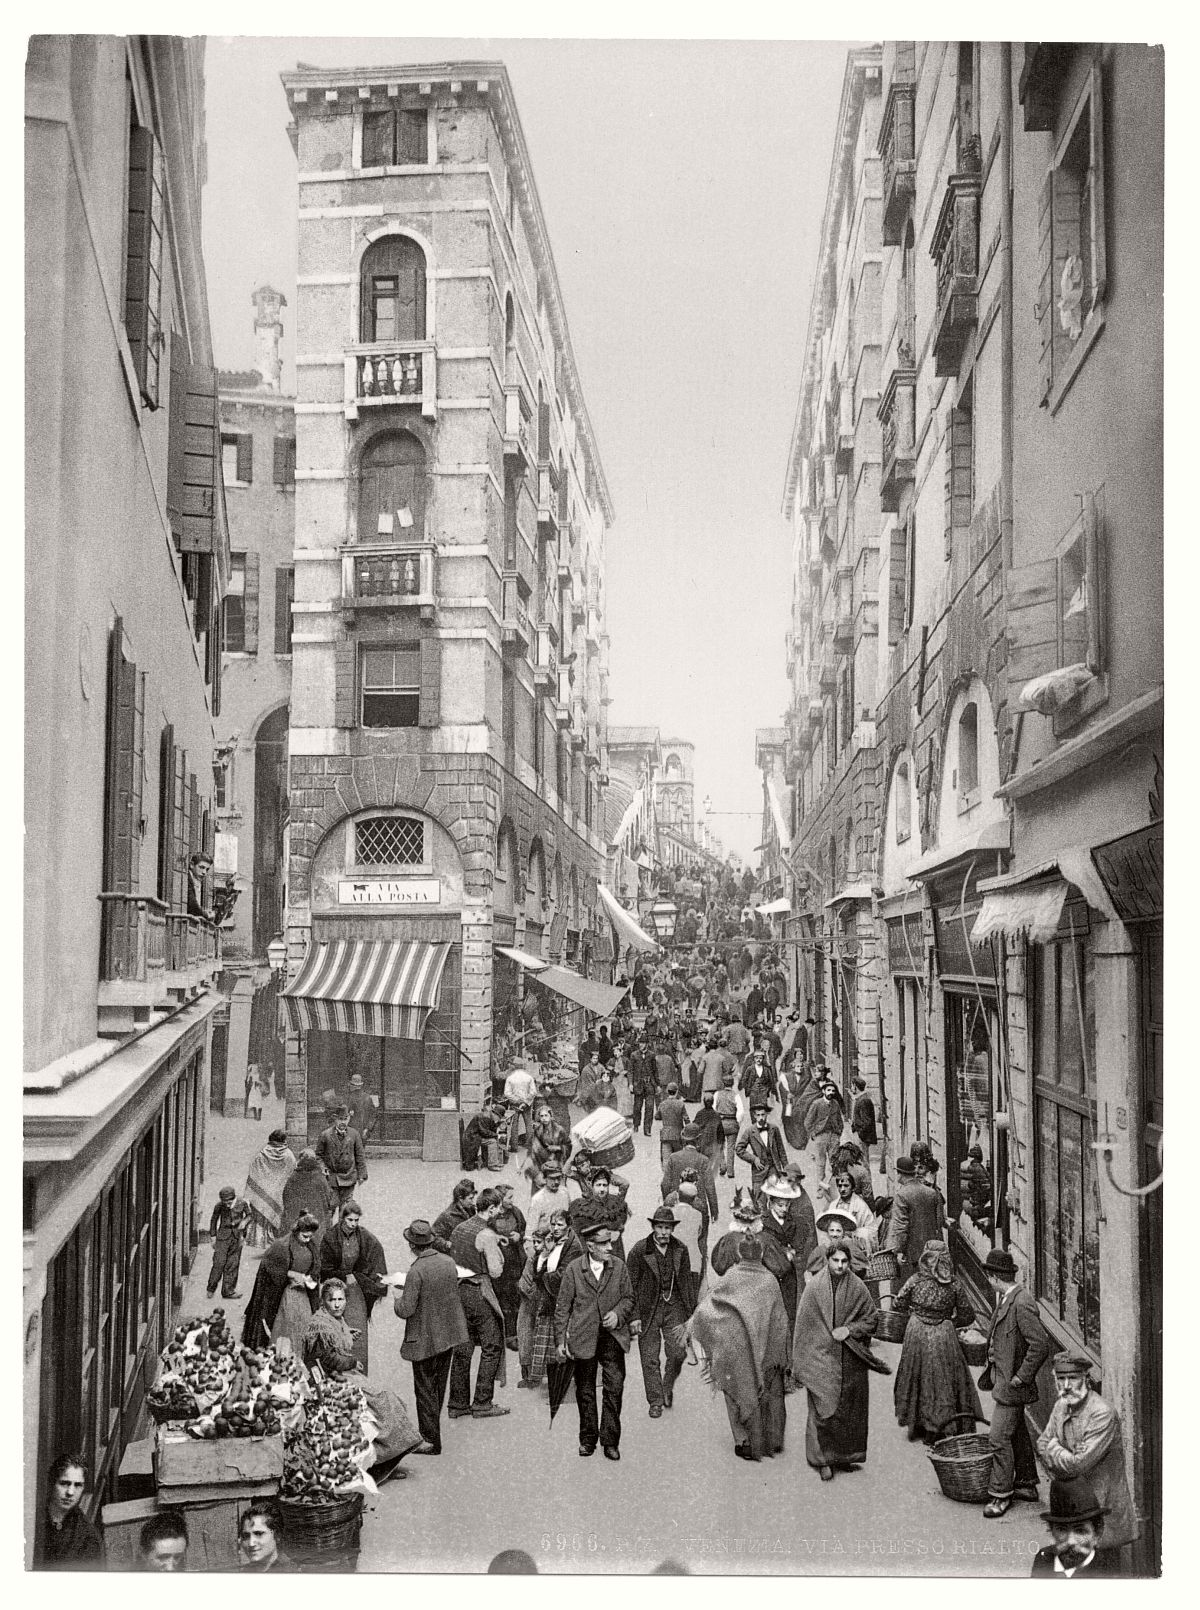 vintage-bw-photos-of-venice-italy-in-19th-century-07